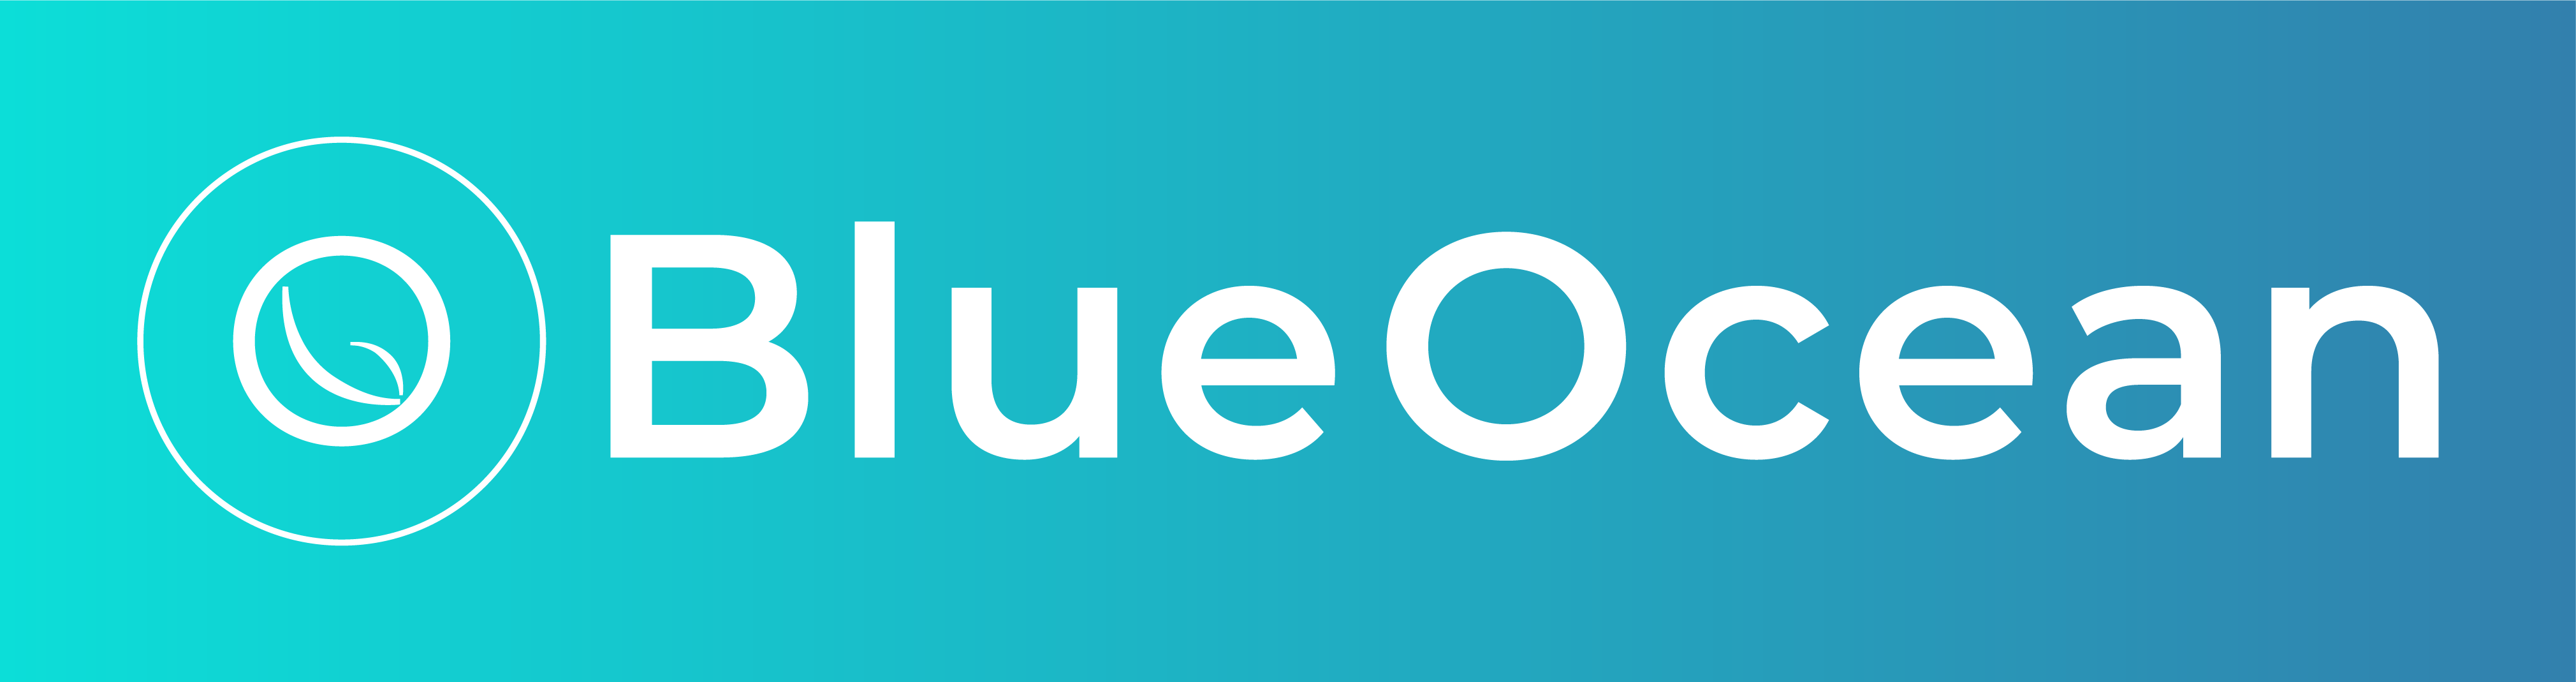 logogradient 2 - BlueOcean Ventures II Is The First Tokenized Medtech VC Fund In The World -Supporting Innovation In The Health Sector